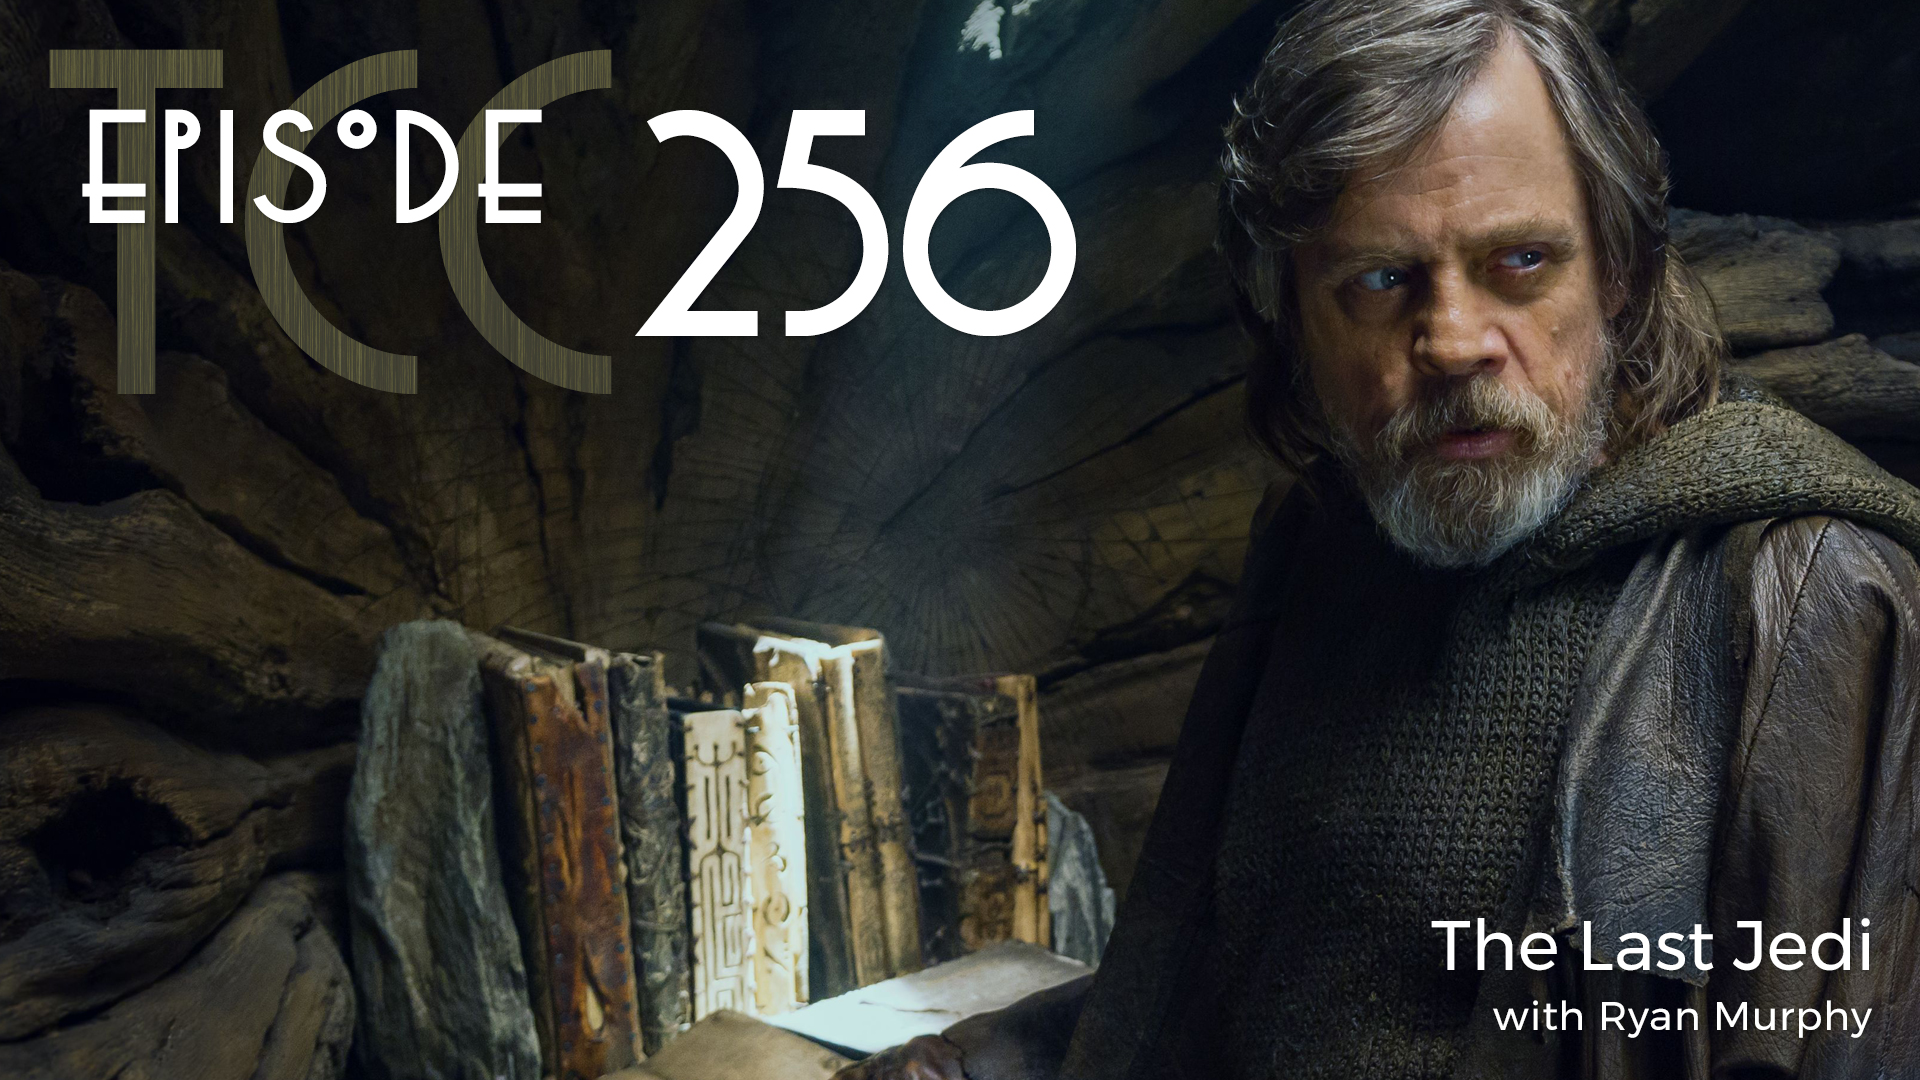 The Citadel Cafe 256: The Last Jedi